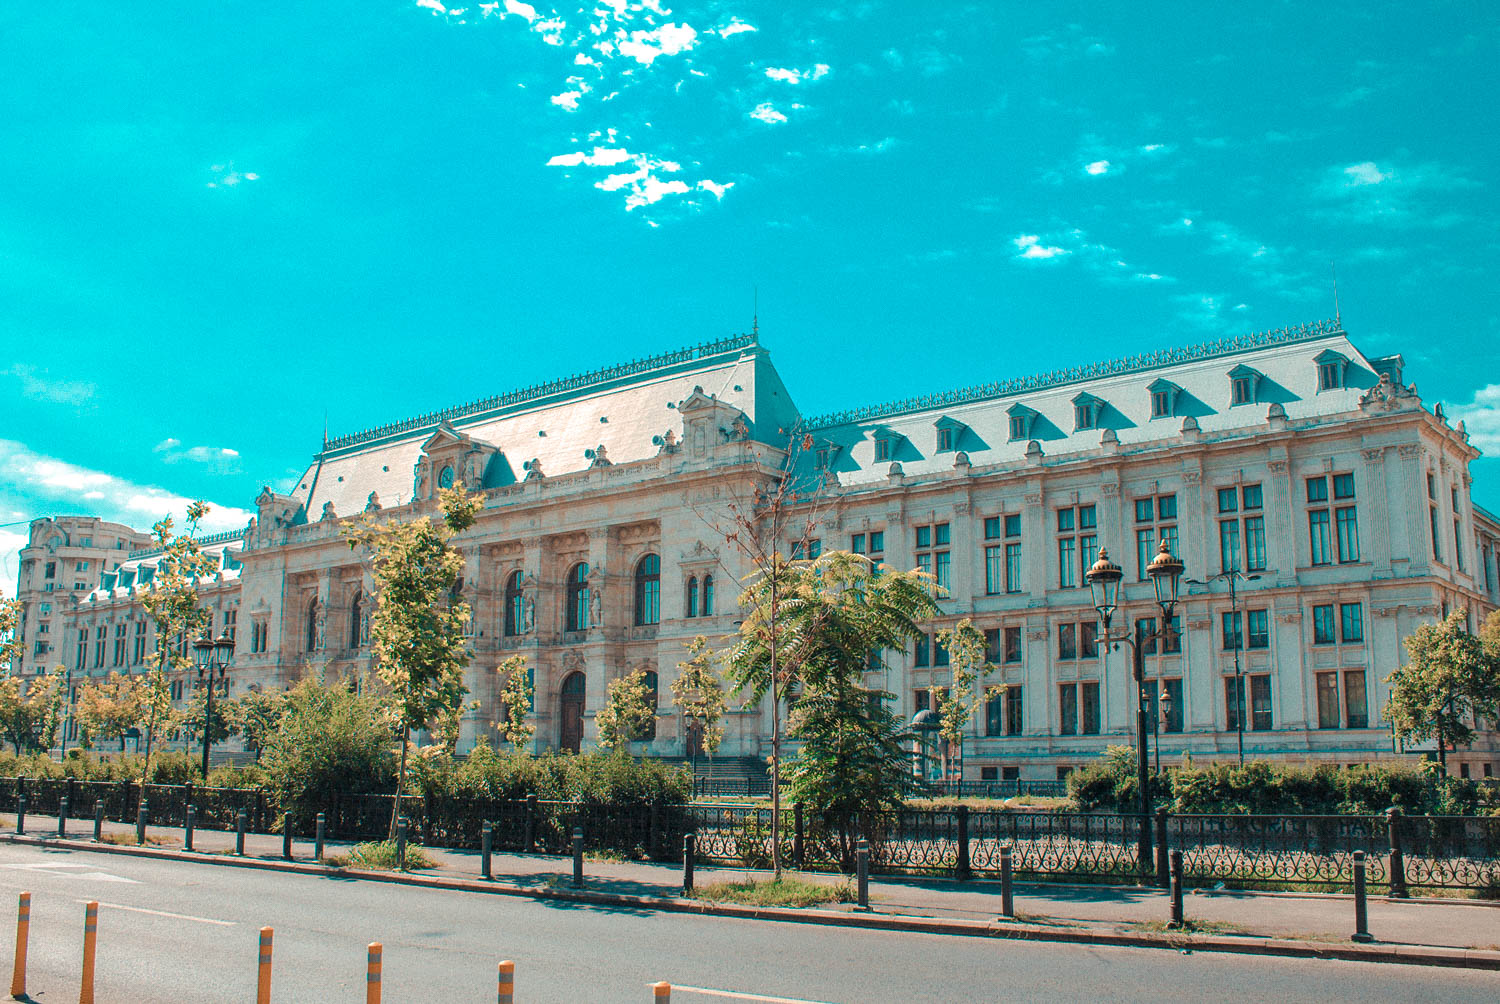 Bucharest-Centrum-2-3